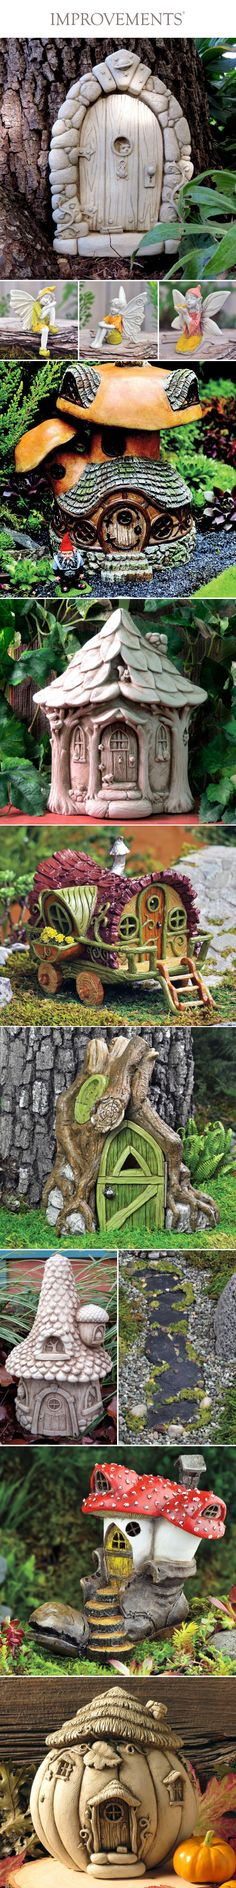 Searching for backyard ideas to freshen up your foliage this spring? Just mix some magic into your lawn with these fairy garden statues. We offer several varieties ranging from quaint little cottages to mini fairy gardens, so you can even create your own little village. This collection starts at just $19.99. #SmallGardenIdeas